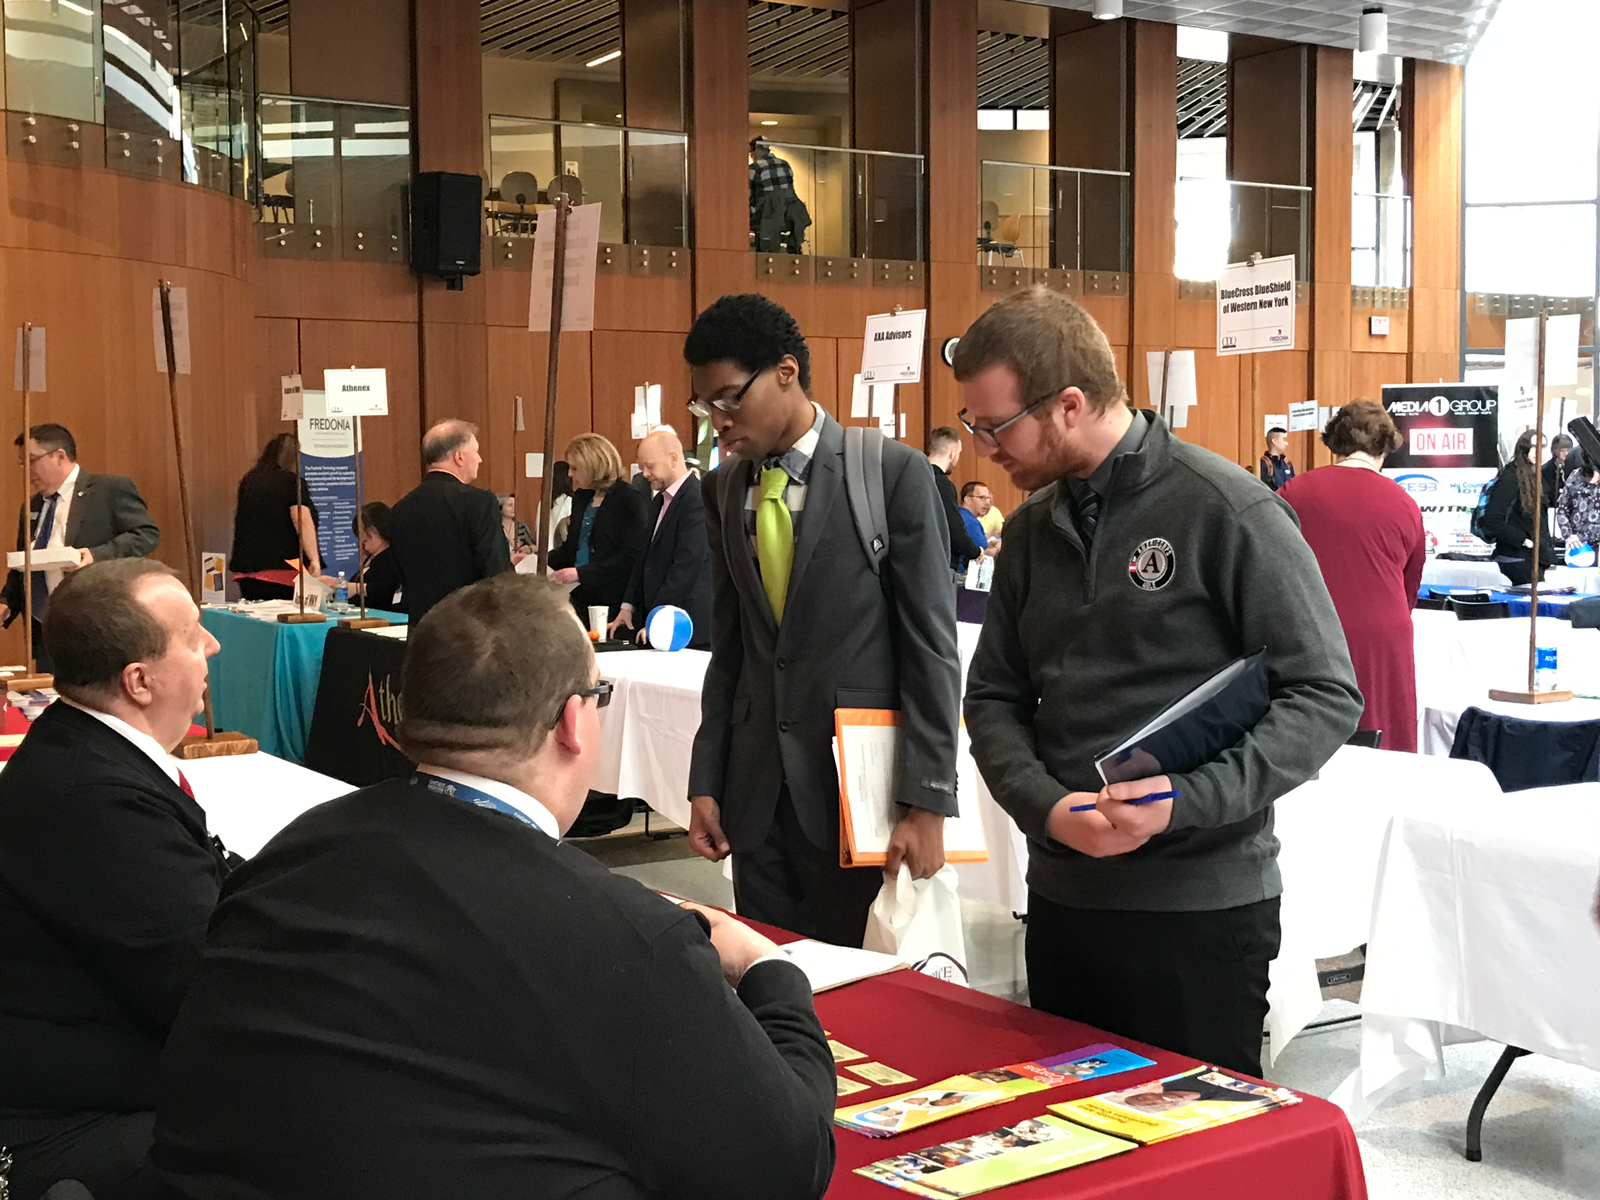 The Job & Internship Expo is a great way to talk to employers directly